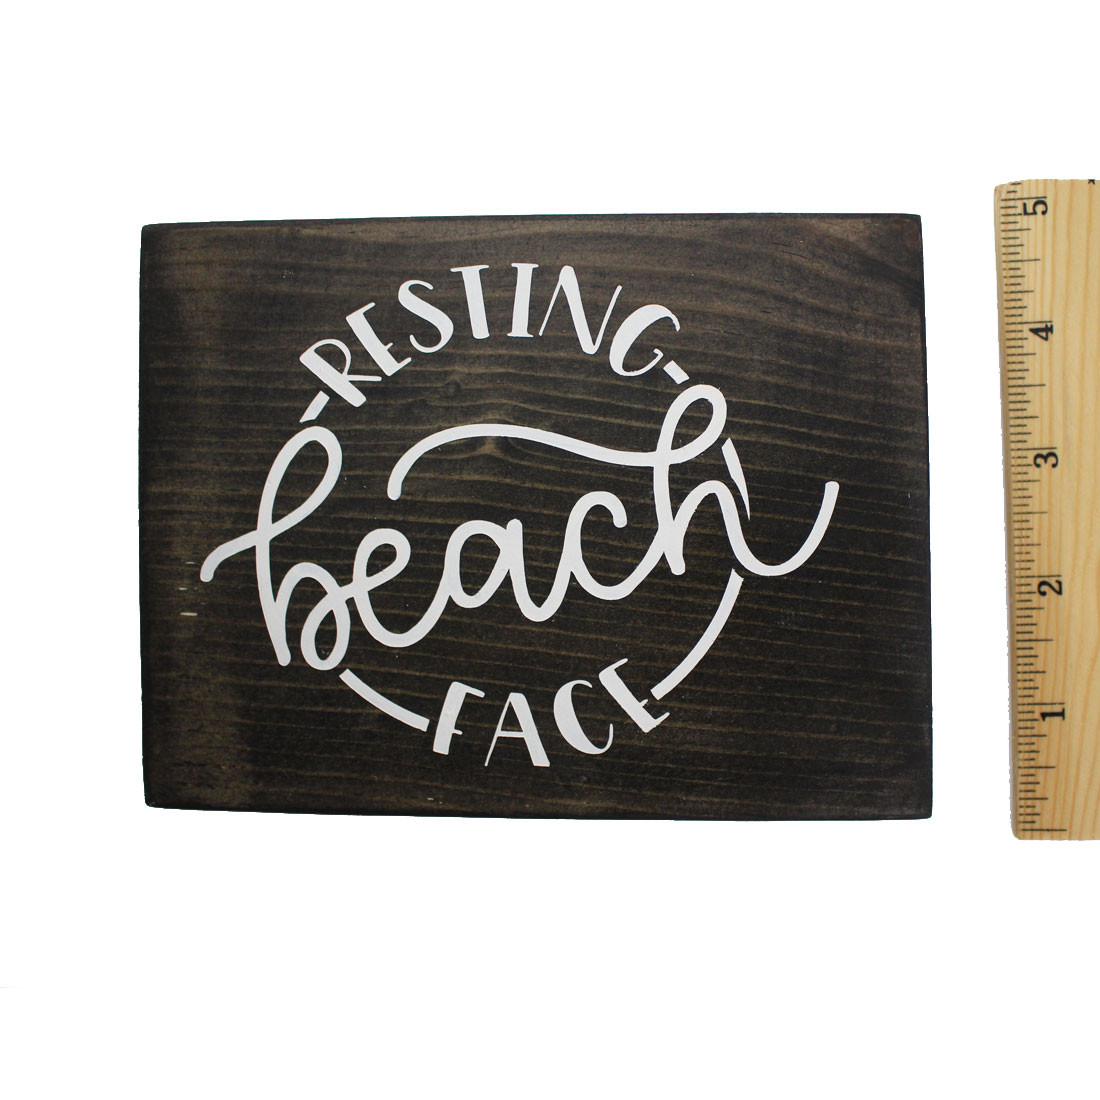 Resting Beach Face measured with a ruler.